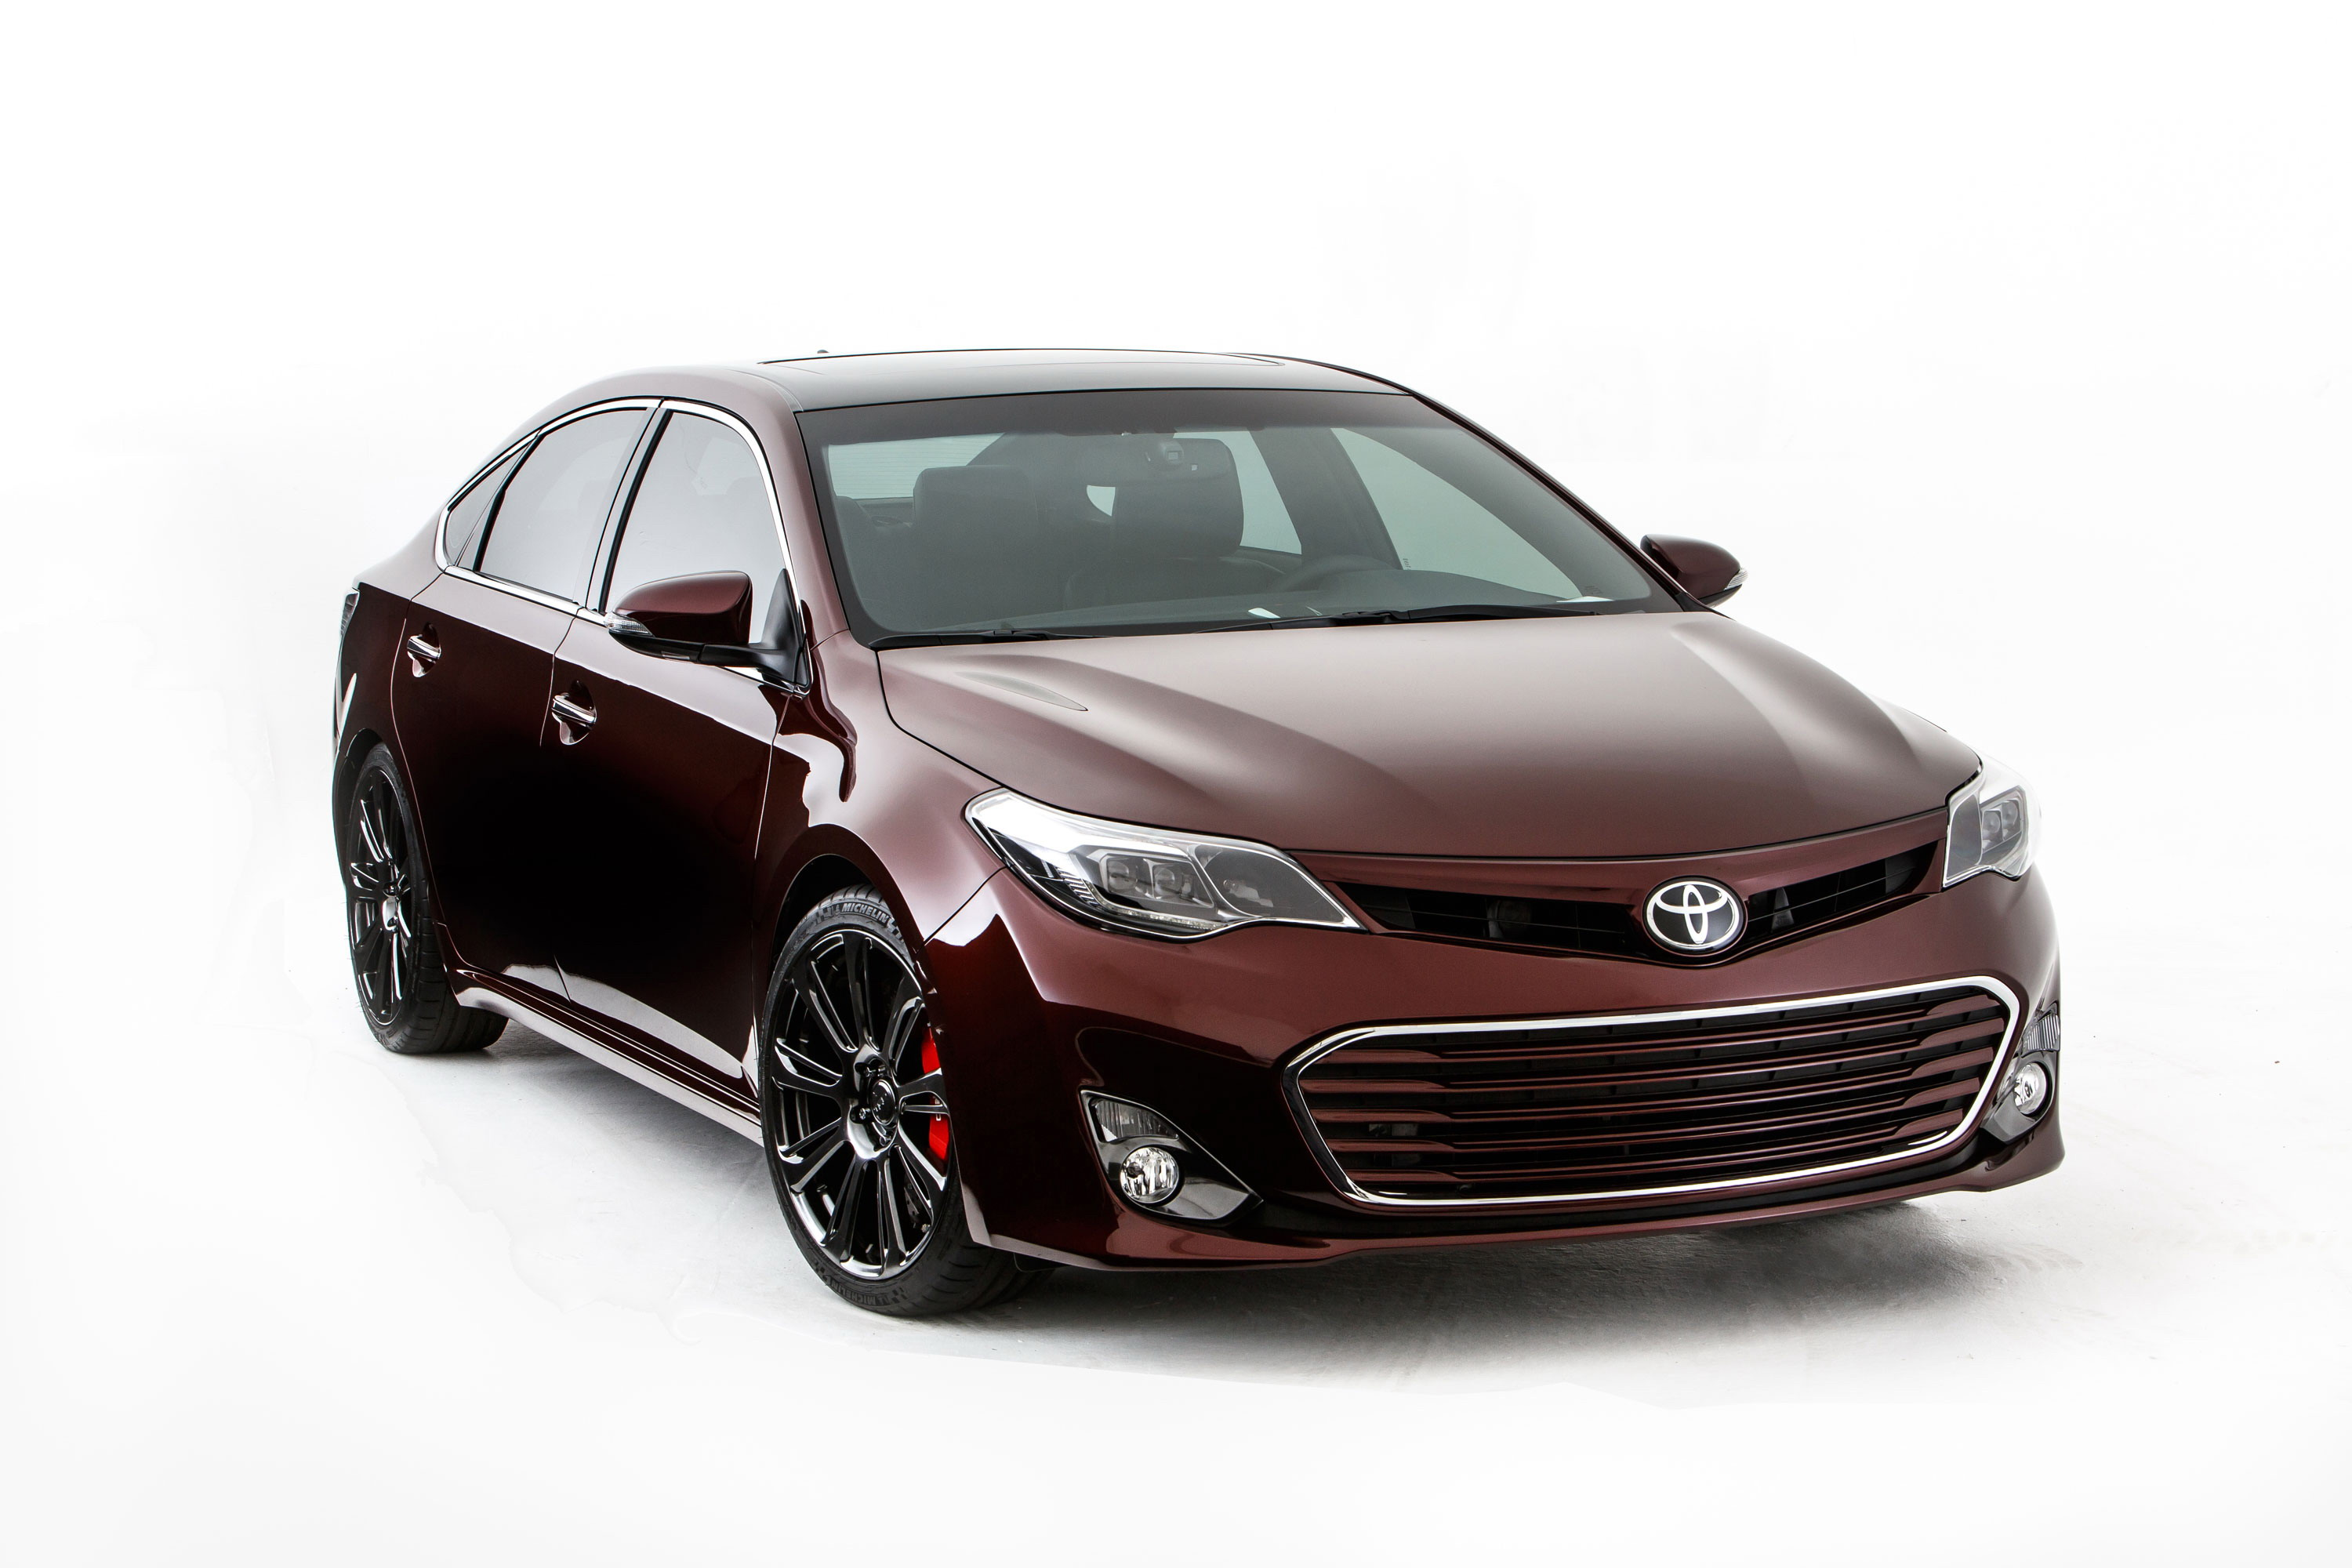 Toyota Ft 86 >> 2013 Toyota Avalon TRD Edition Pictures, Photos ...